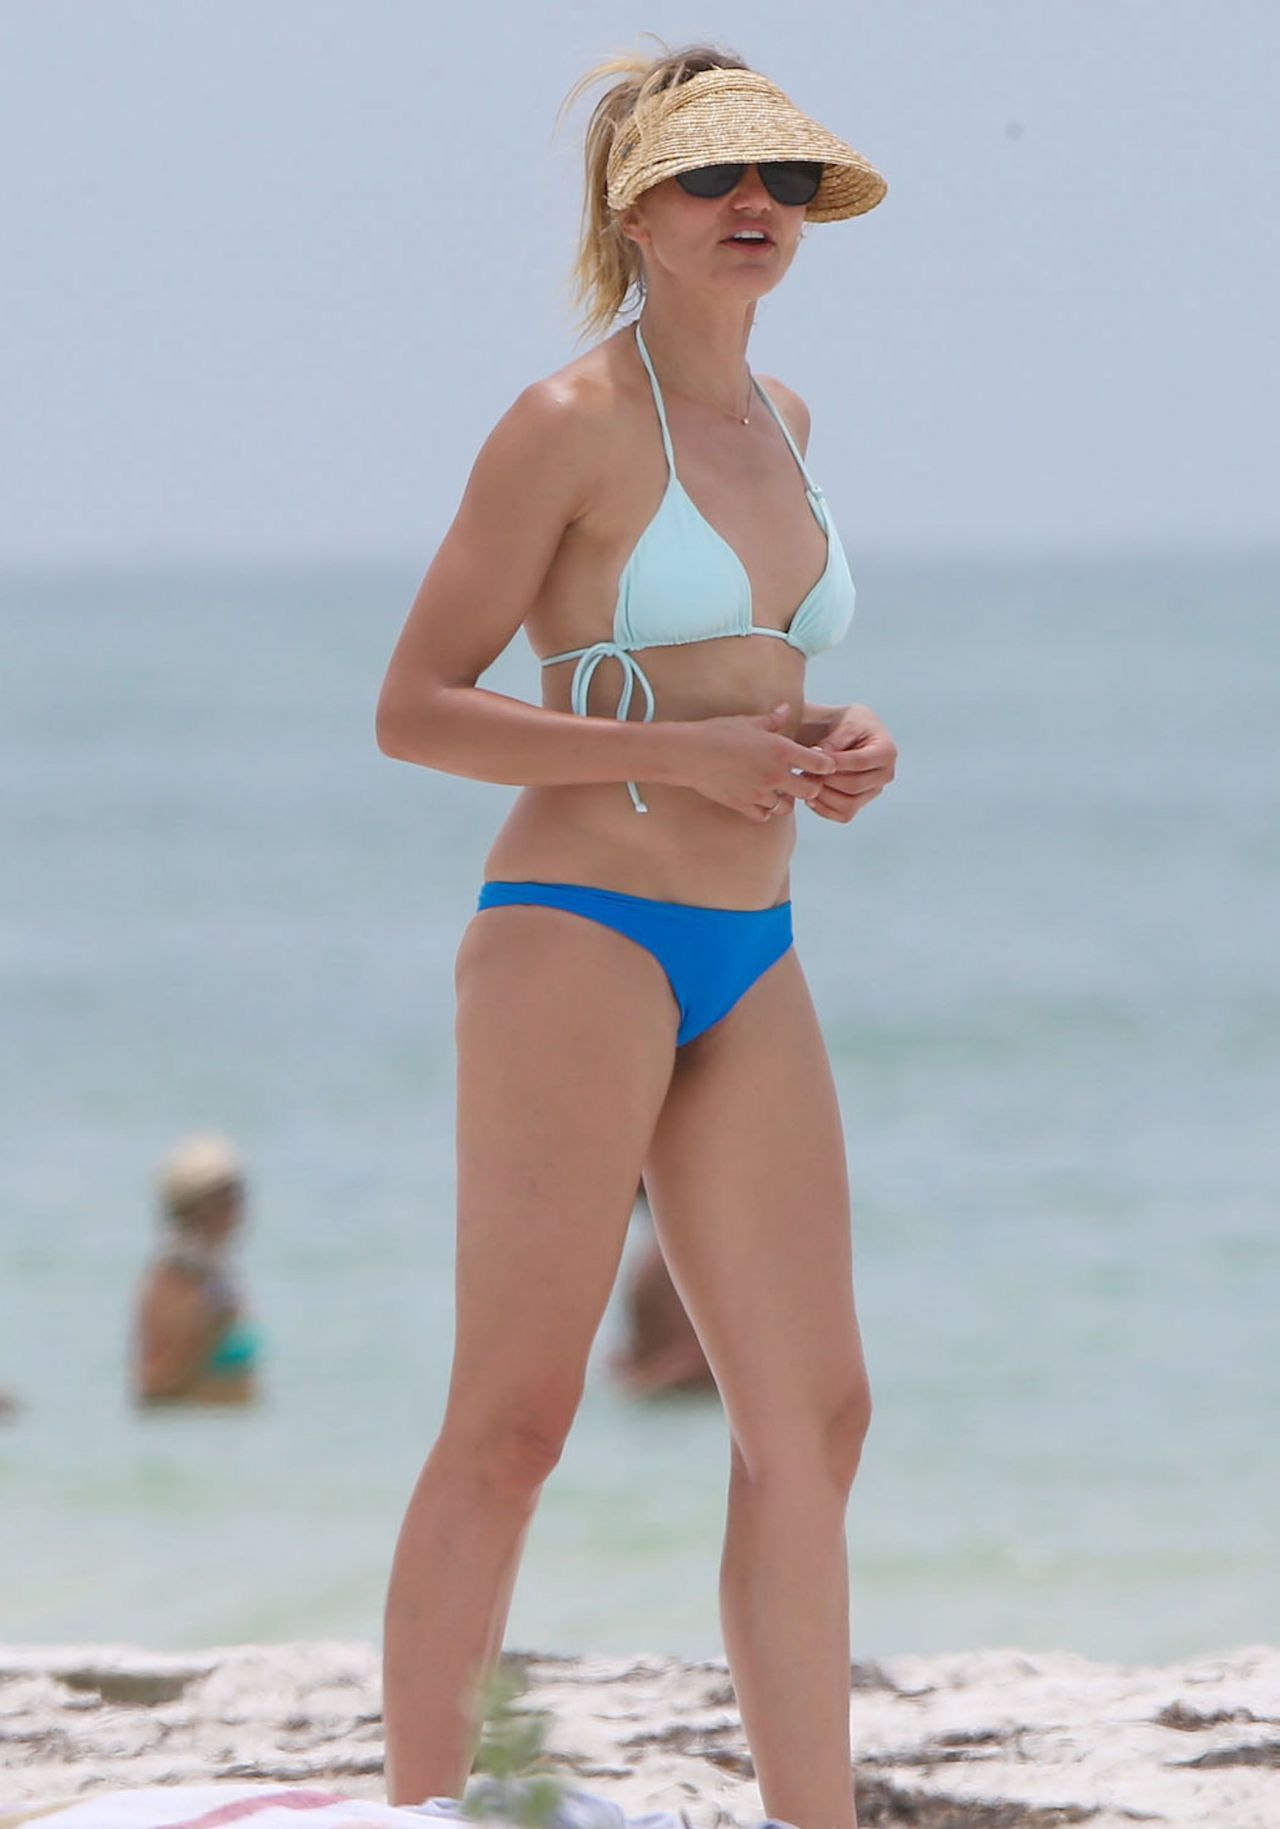 Cameron Diaz Bikini Candids - Beach in Florida, July 2014